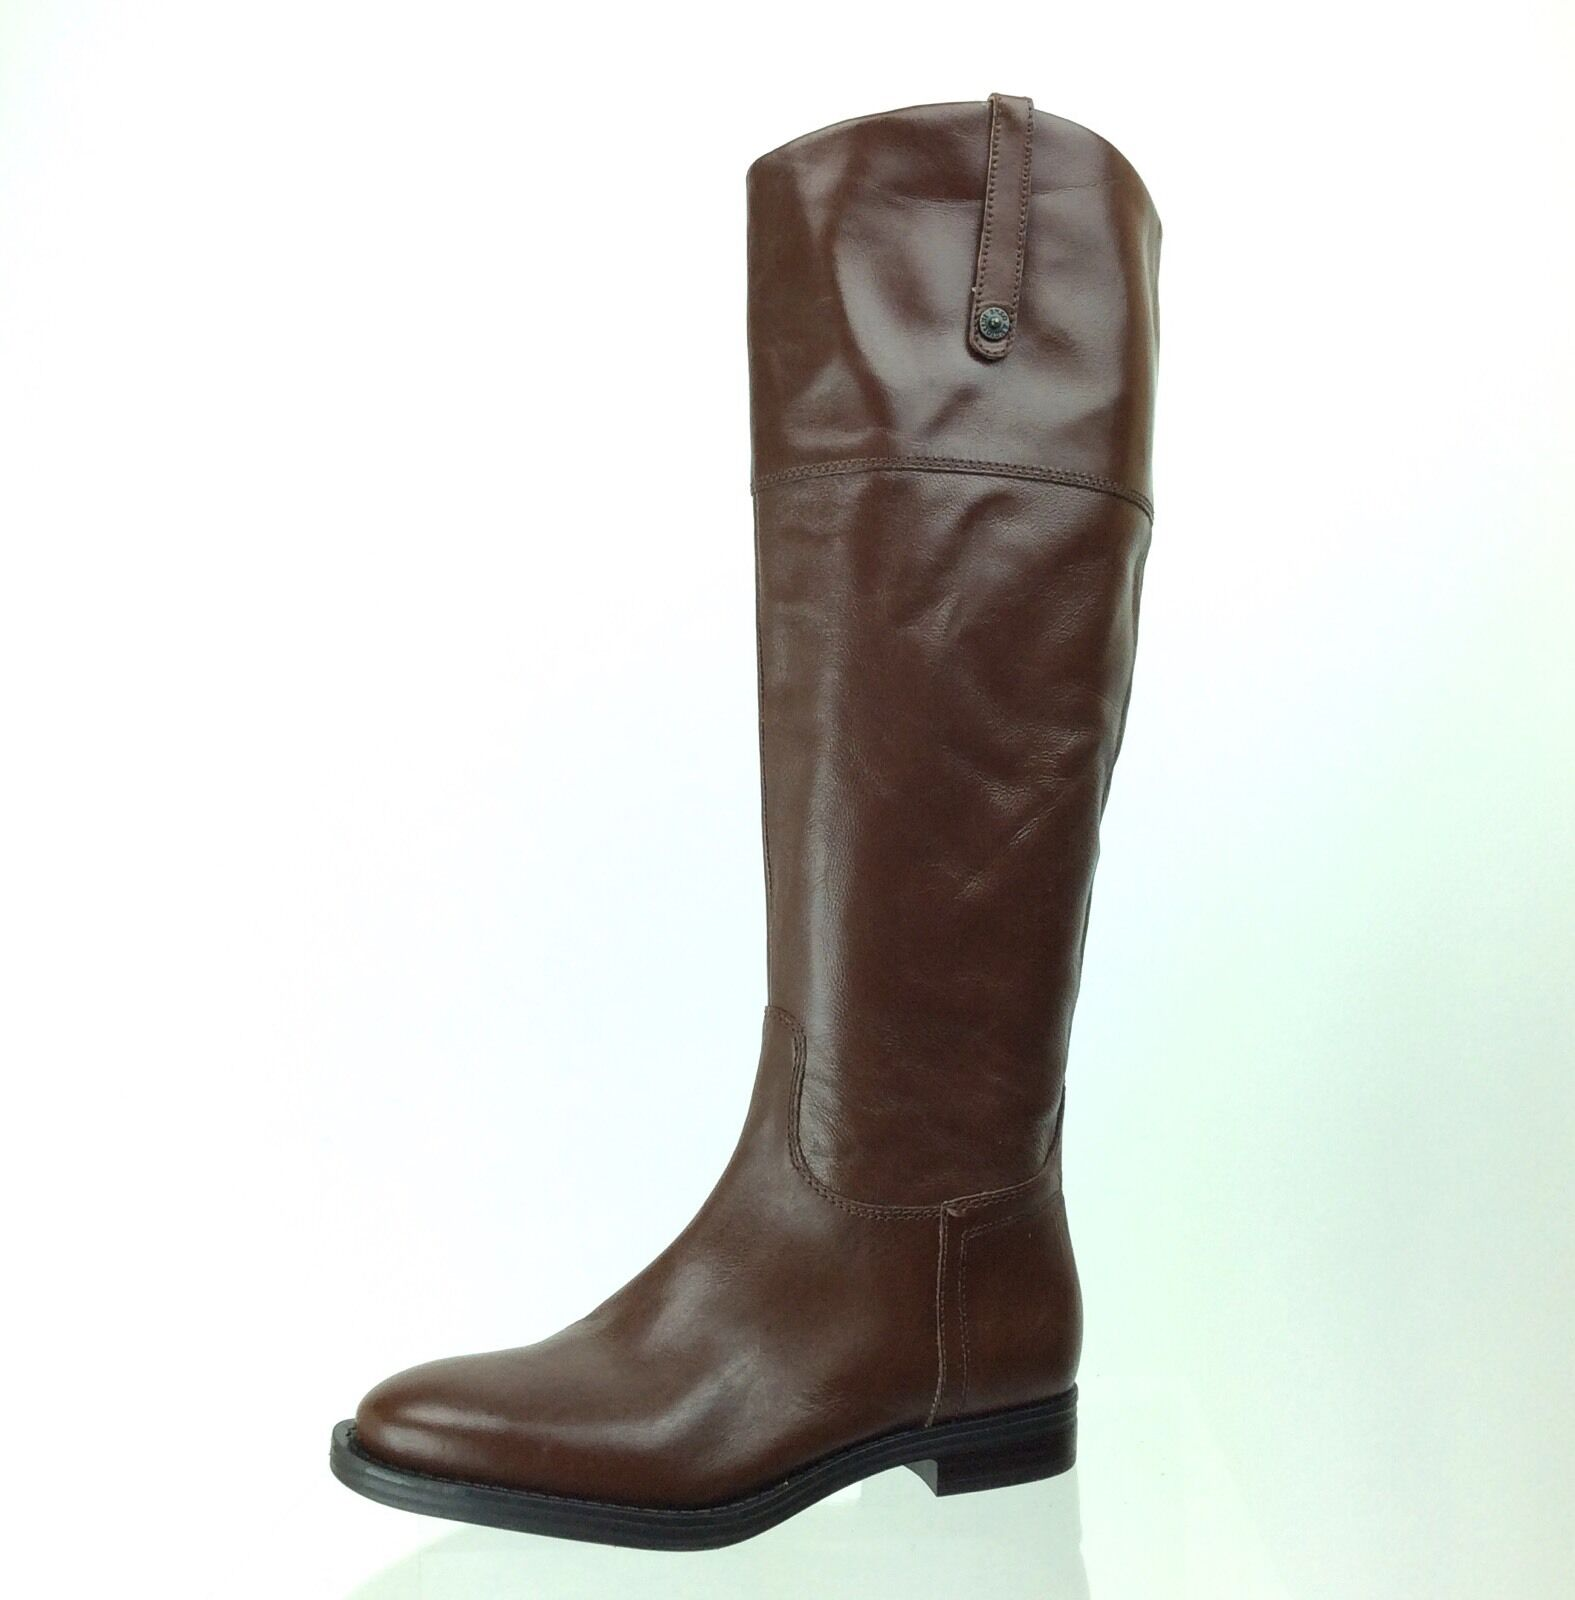 Women's Enzo Angiolini Eaellerby Brown Leather Knee-High Boots Size 5 M NEW